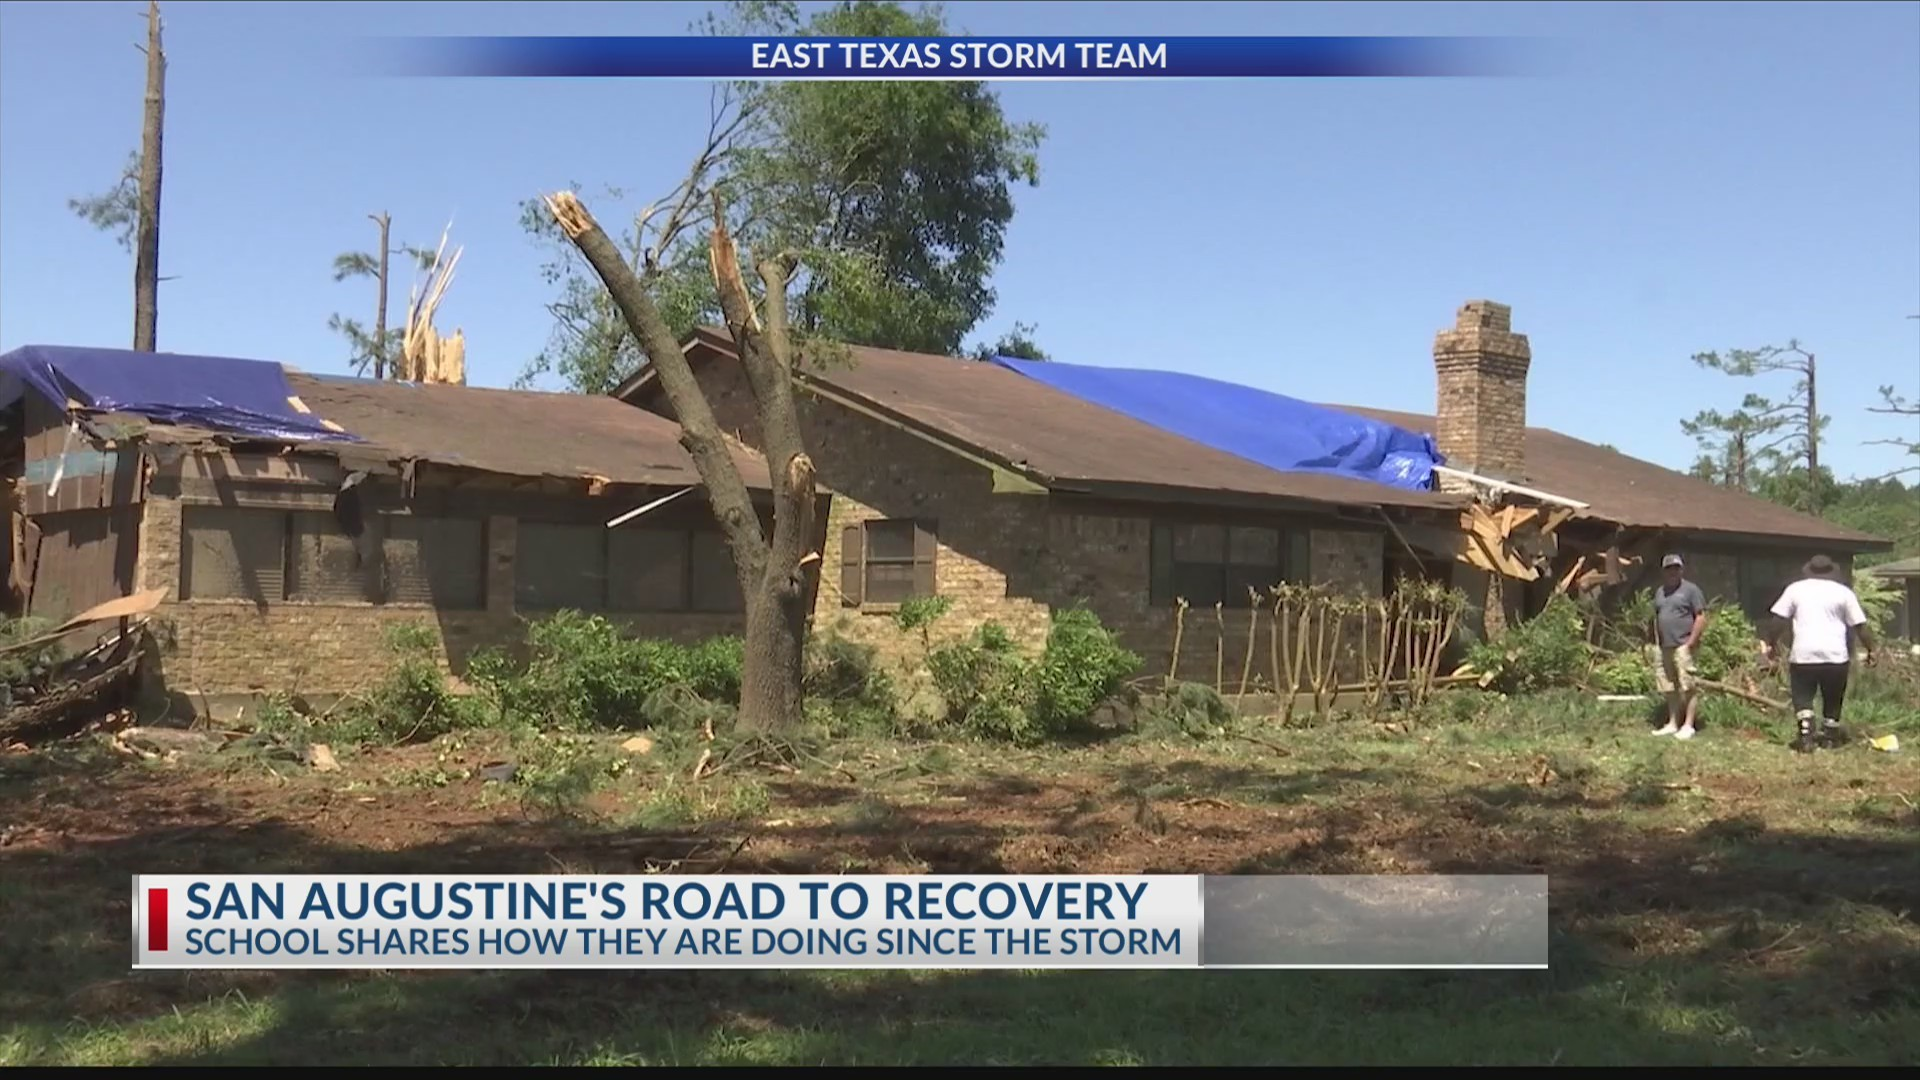 ON_THE_ROAD_TO_RECOVERY__San_Augustine_r_9_20190511031611